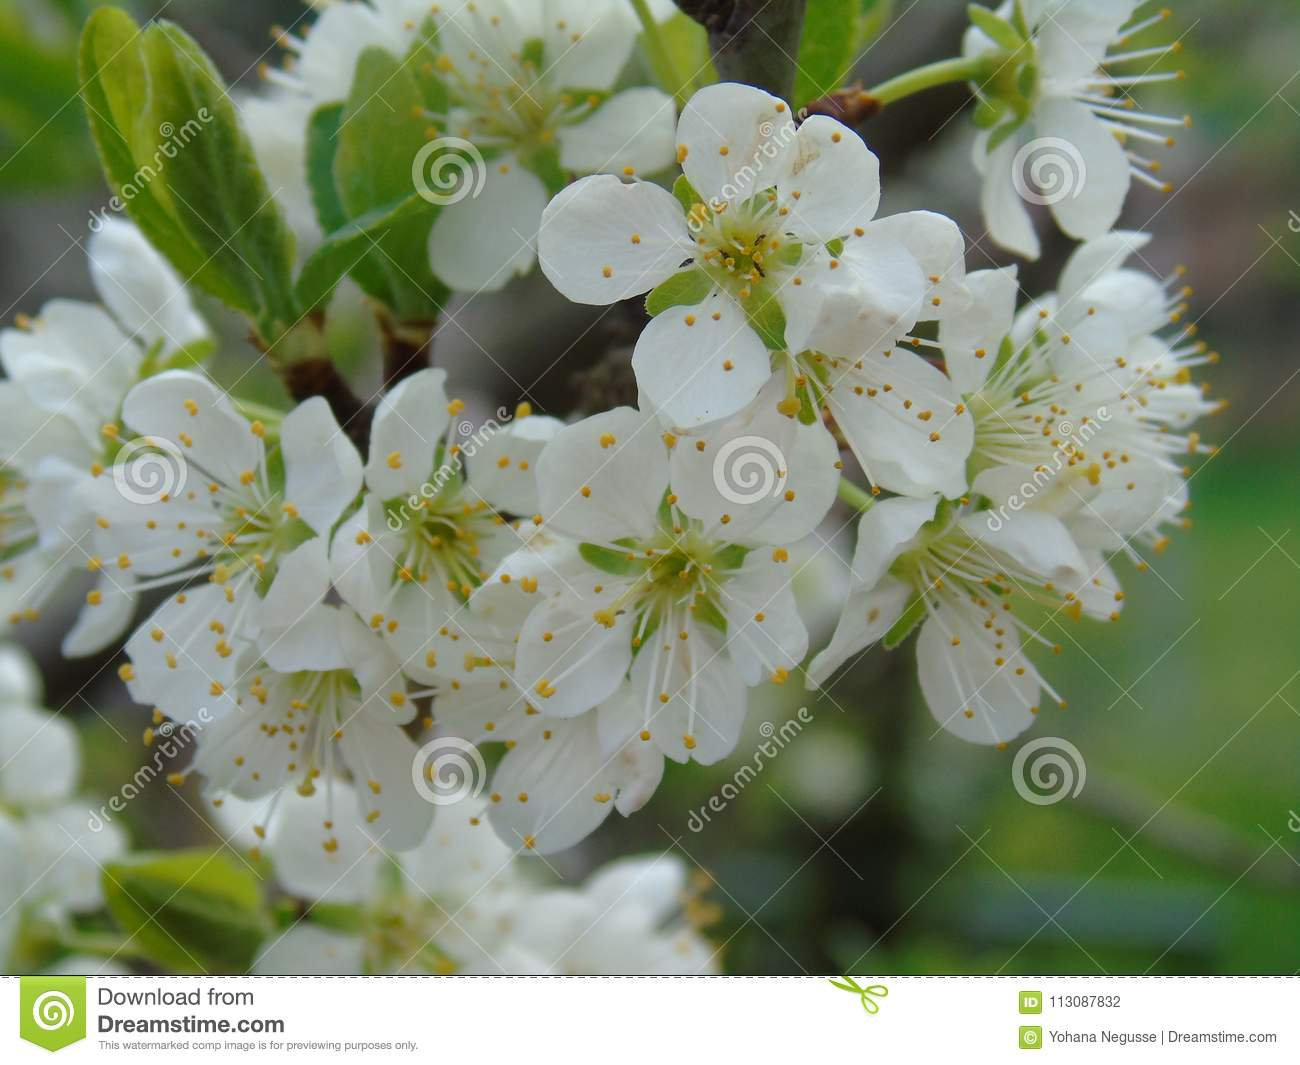 Some beautiful flowers from the village stock photo image of download some beautiful flowers from the village stock photo image of botany blossom izmirmasajfo